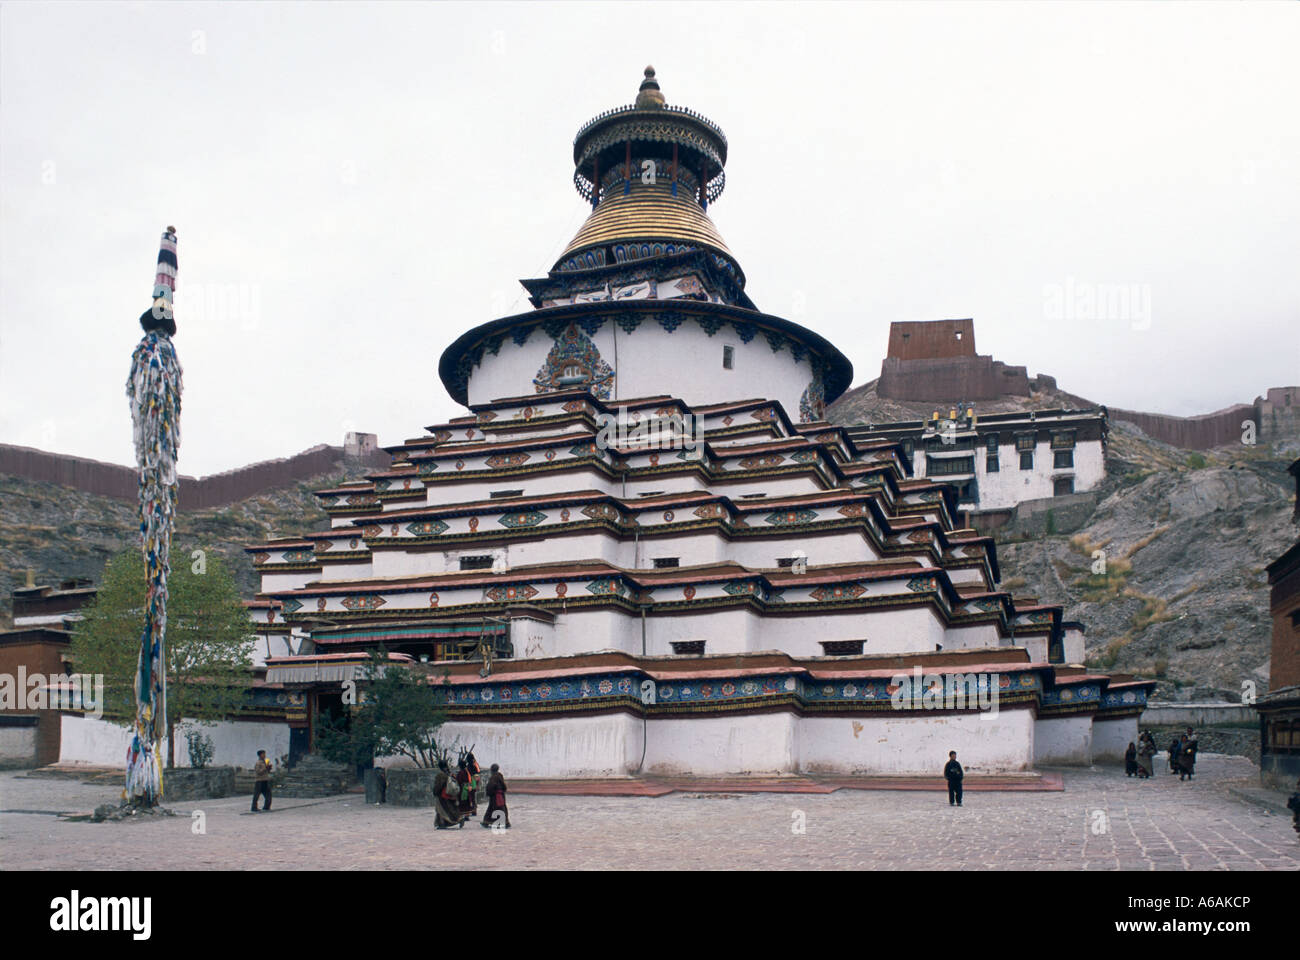 China, Tibet, Gyantse, Kumbum, exterior of three-dimensional, six-story,  honeycombed with little chapels, low angle - Stock Image